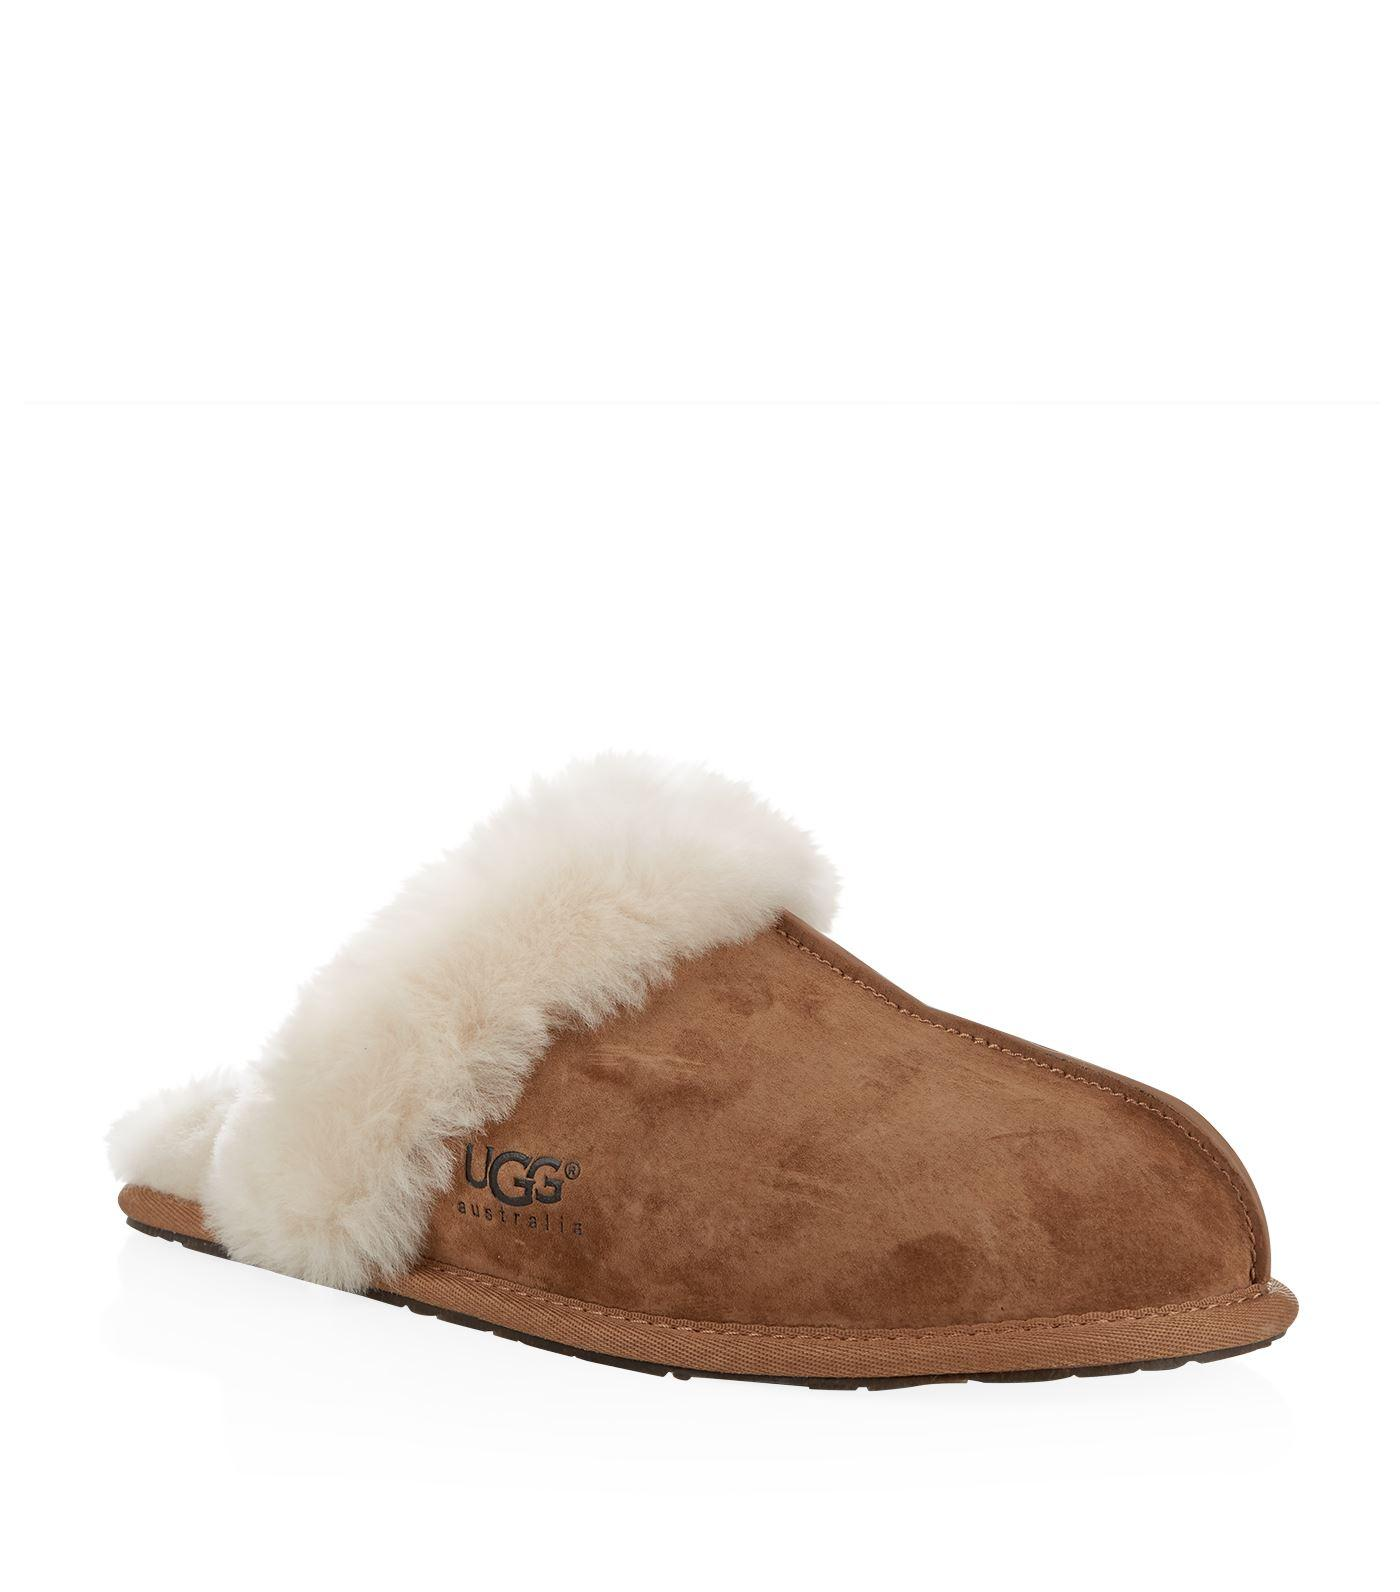 073a1791f9b Insole  Genuine sheepskin sockliner that naturally wicks away moisture and  helps keep your feet dry. All slippers are fully lined with 17mm sheepskin.